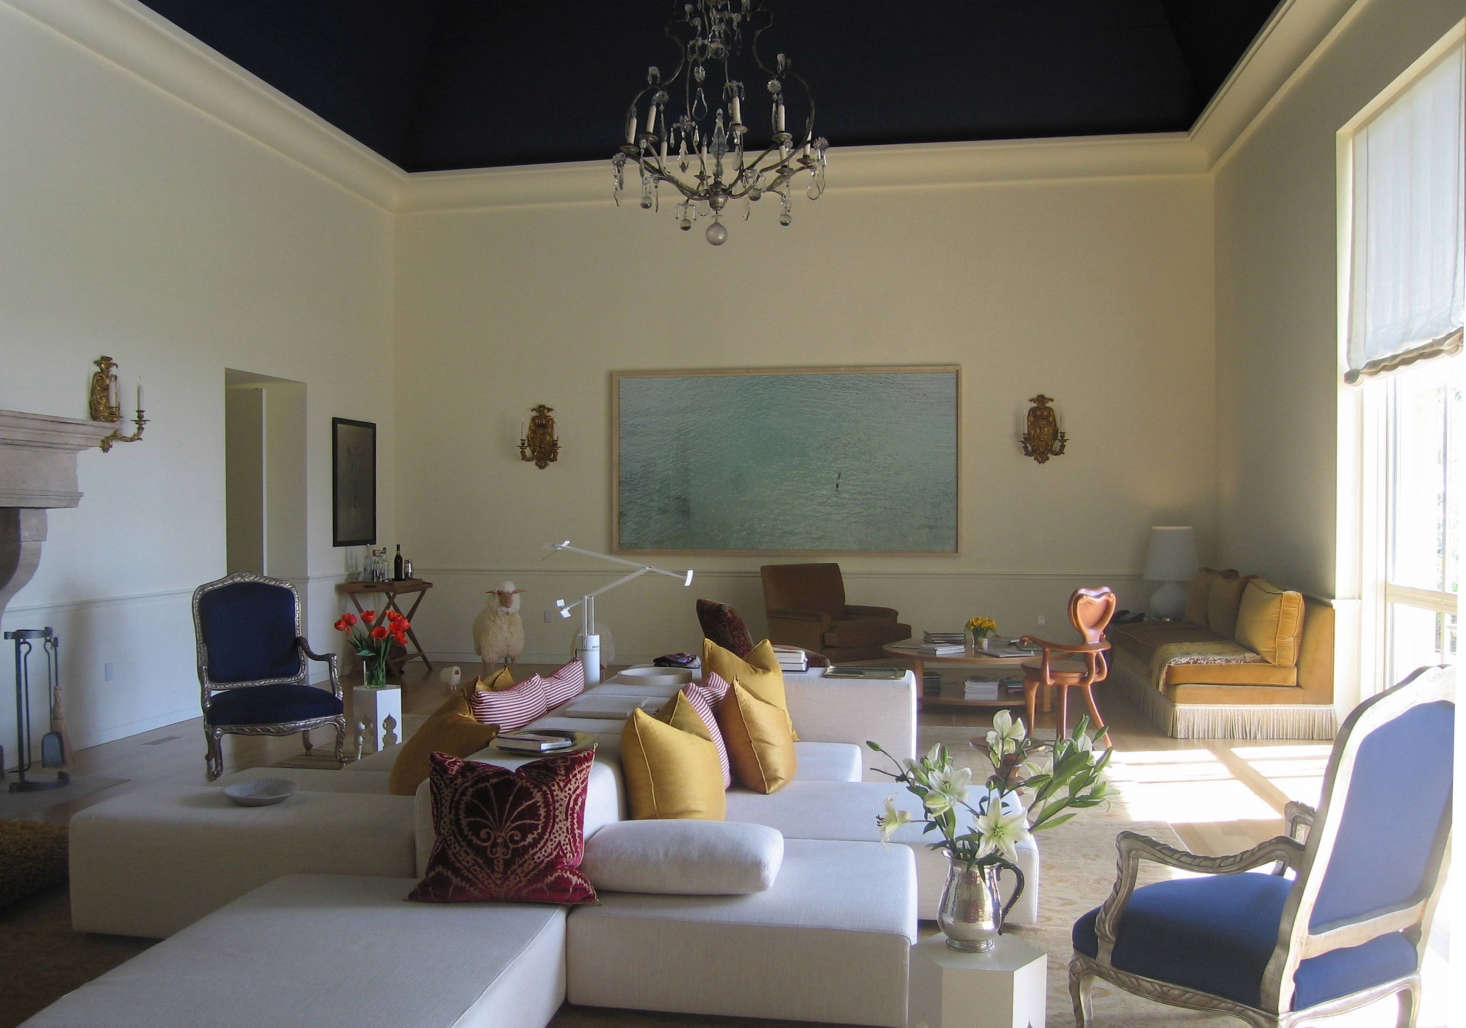 Great Room, Montecito: This enormous room is broken up into various seating areas for different sorts of groupings. The modern Italian sectional roots the room at the center, with French Bergeres and other traditional elements giving depth to the design. Photo: Laura Clayton Baker